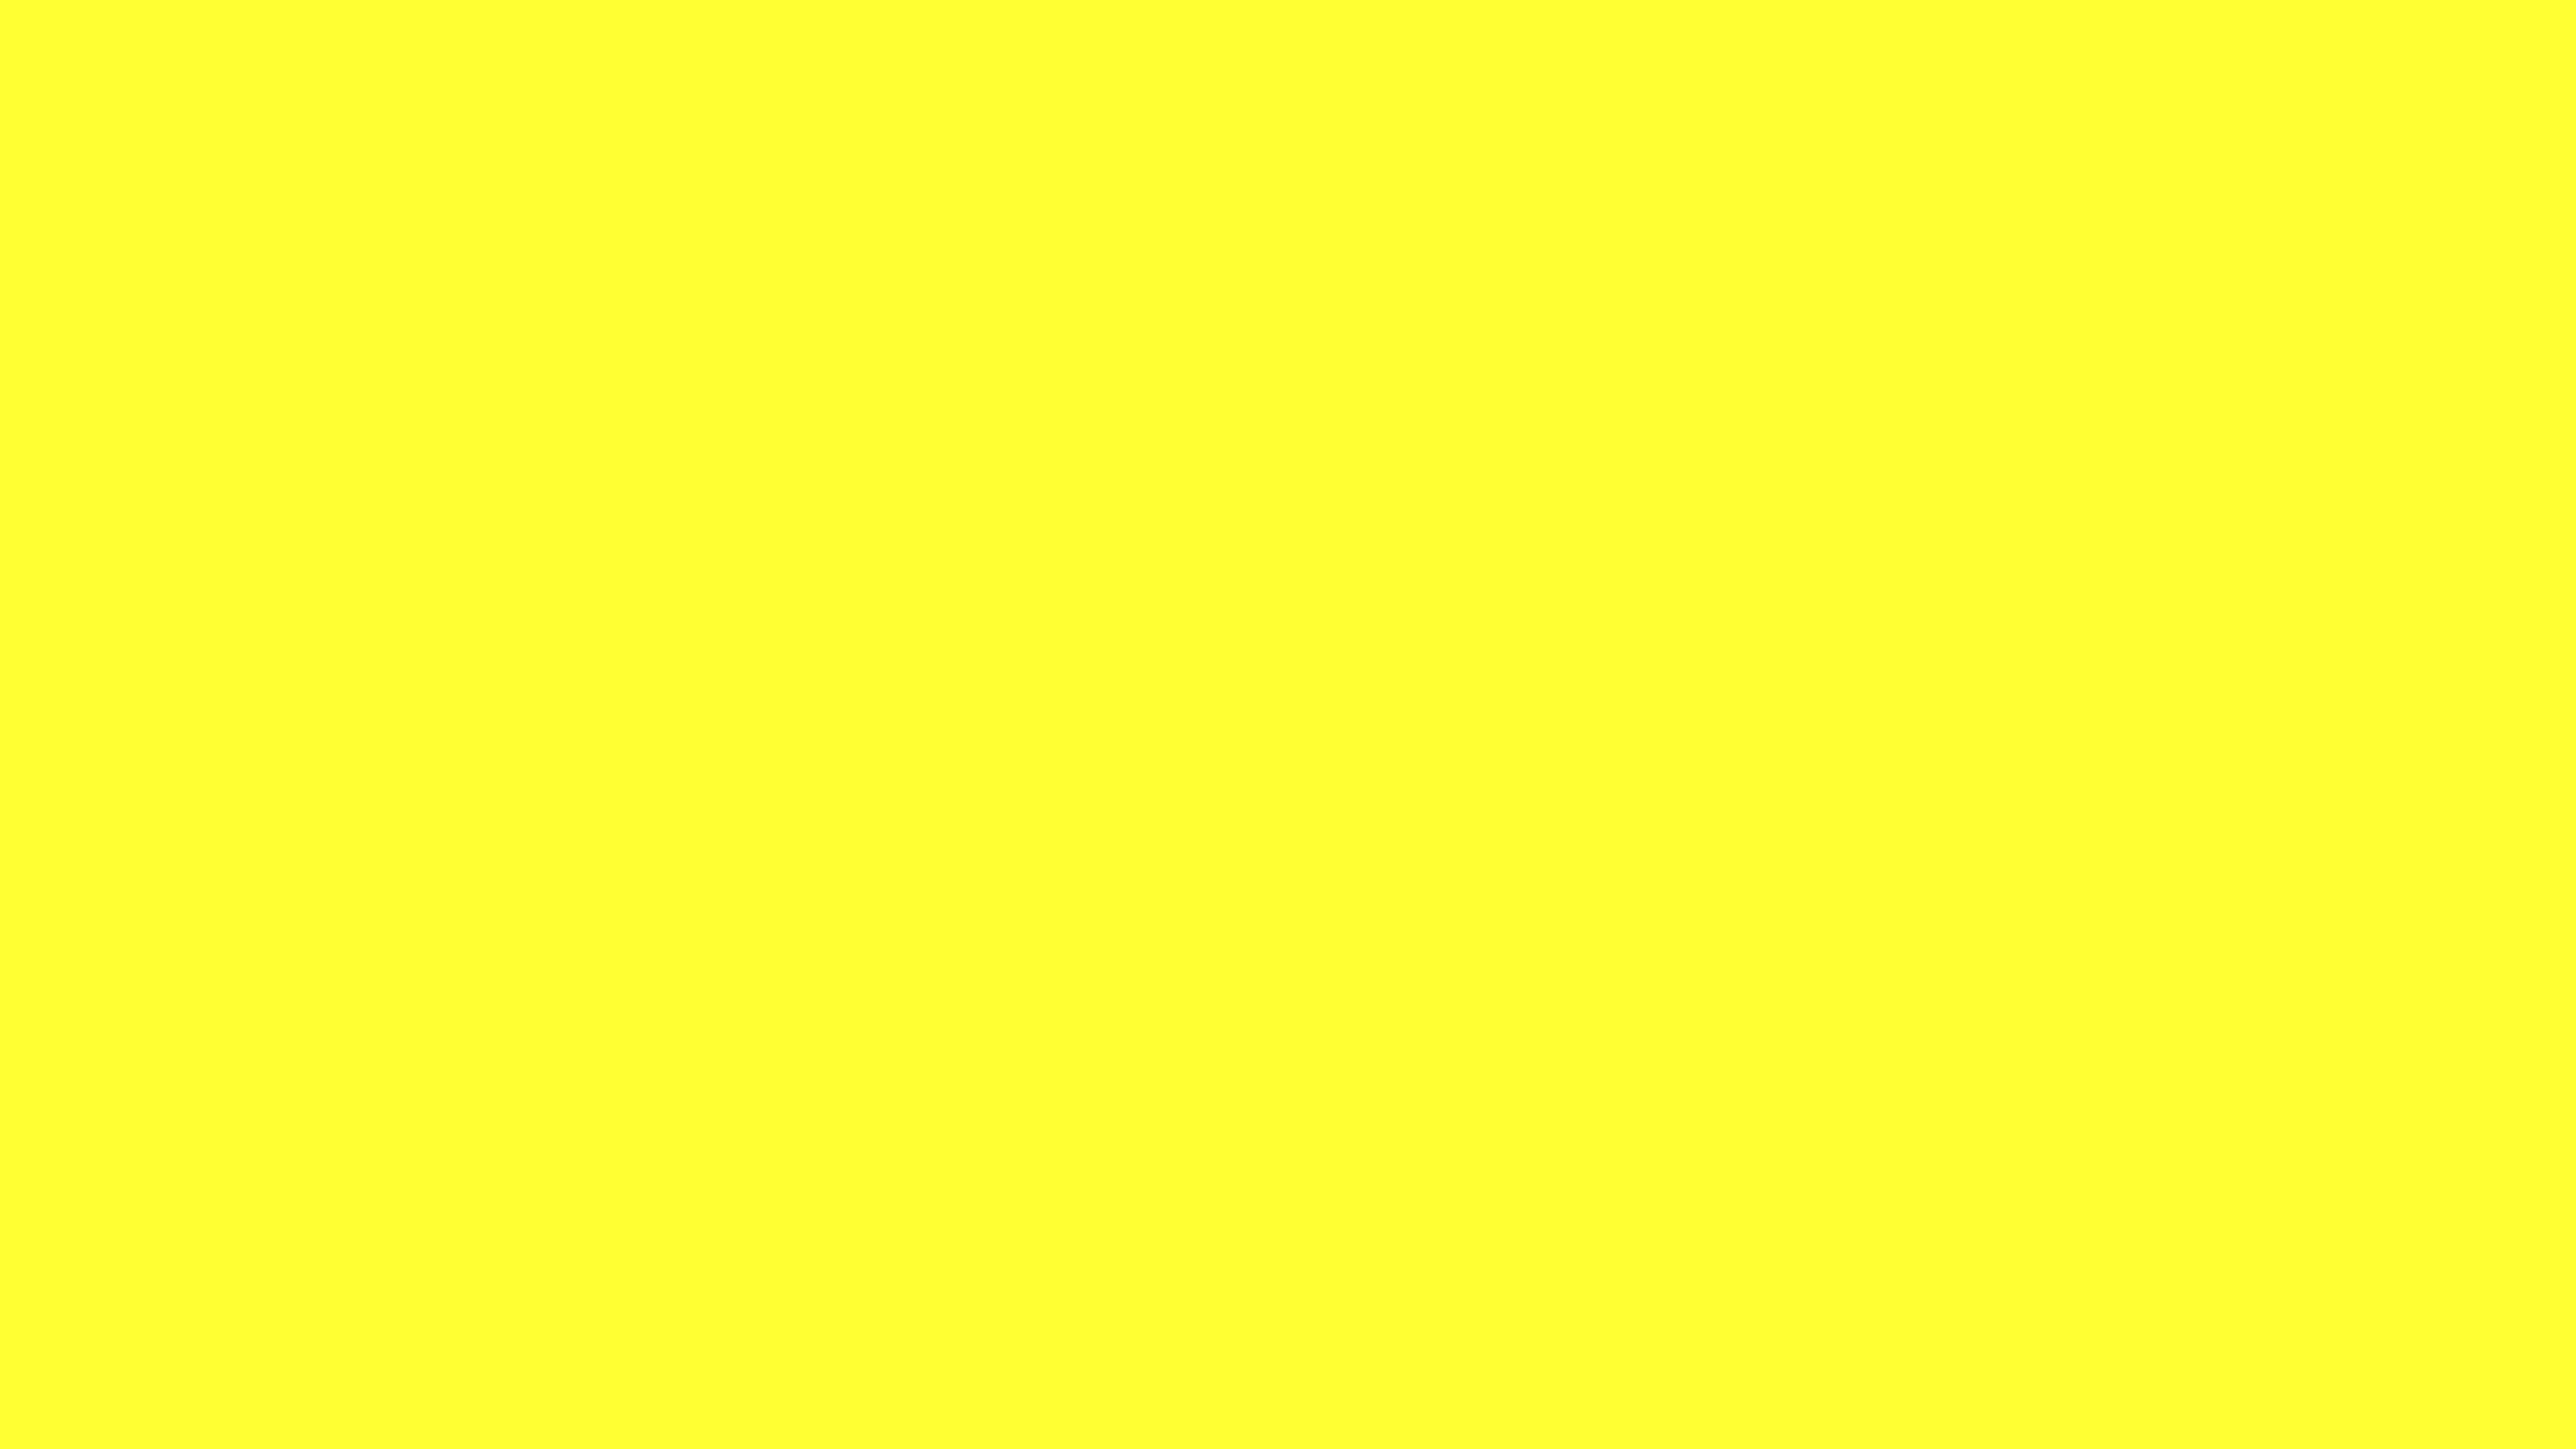 4096x2304 Electric Yellow Solid Color Background